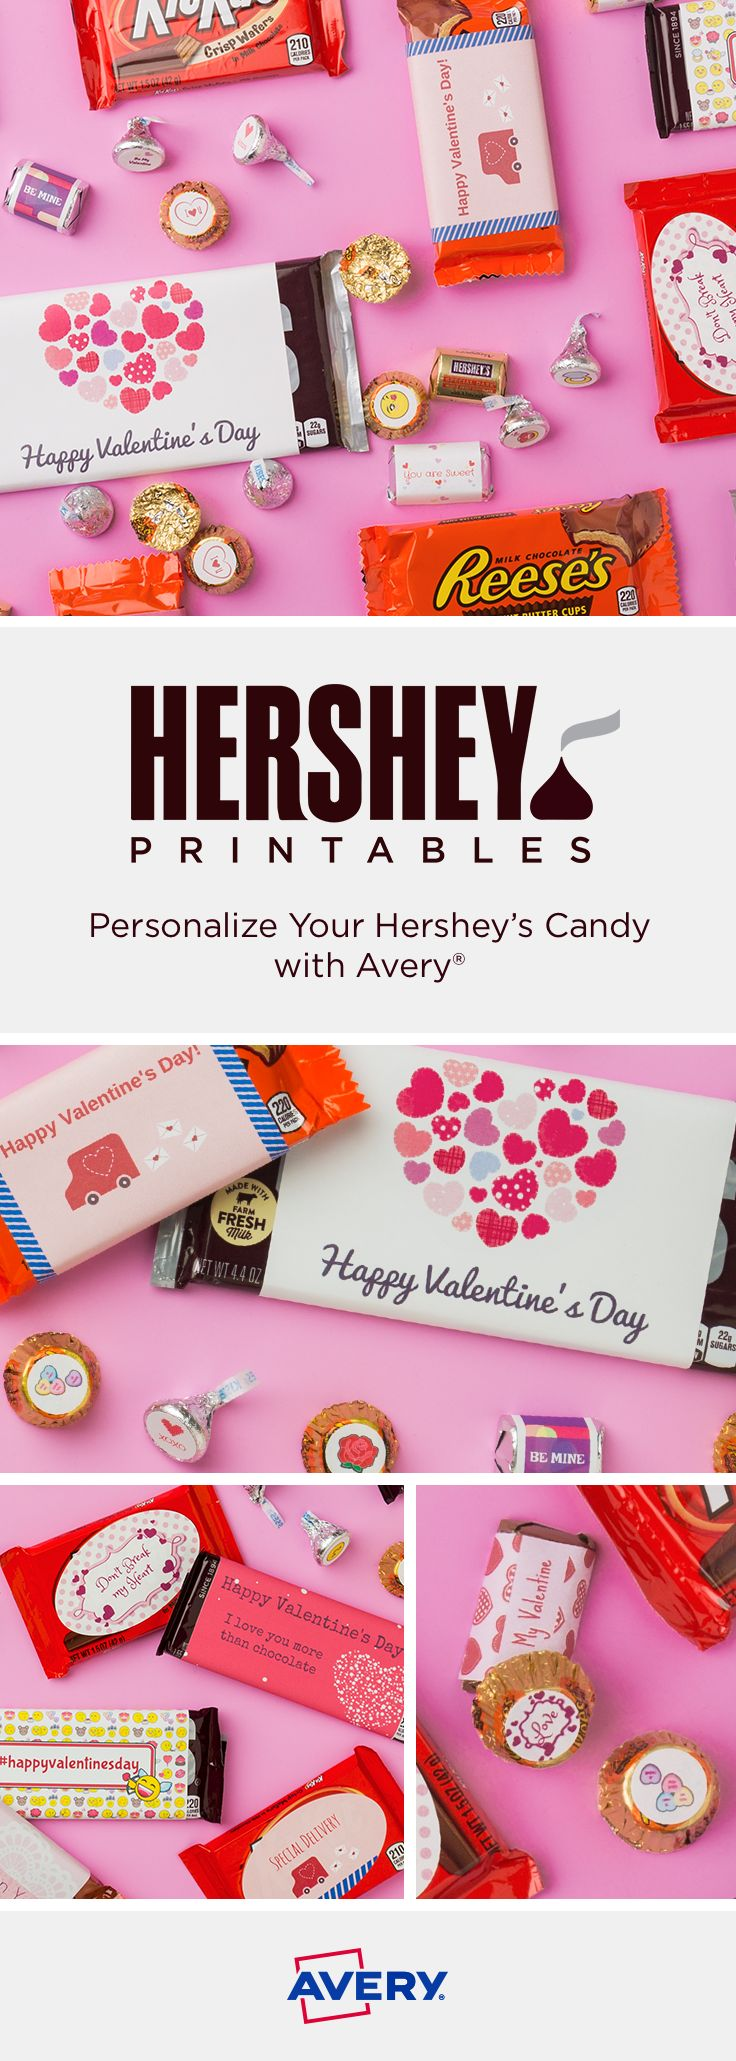 FREE Valentine's Day printables from Avery Design & Print. Choose from a variety of designs, personalize and print. Our printables and candy labels can decorate Hershey Nuggets, Hershey KISSES, REESE'S Peanut Butter Cup Miniatures, KIT KAT Bars and more. Create your own custom candy wrappers for Valentine's Day—with the sweet combination of @Hersheycompany and Avery.